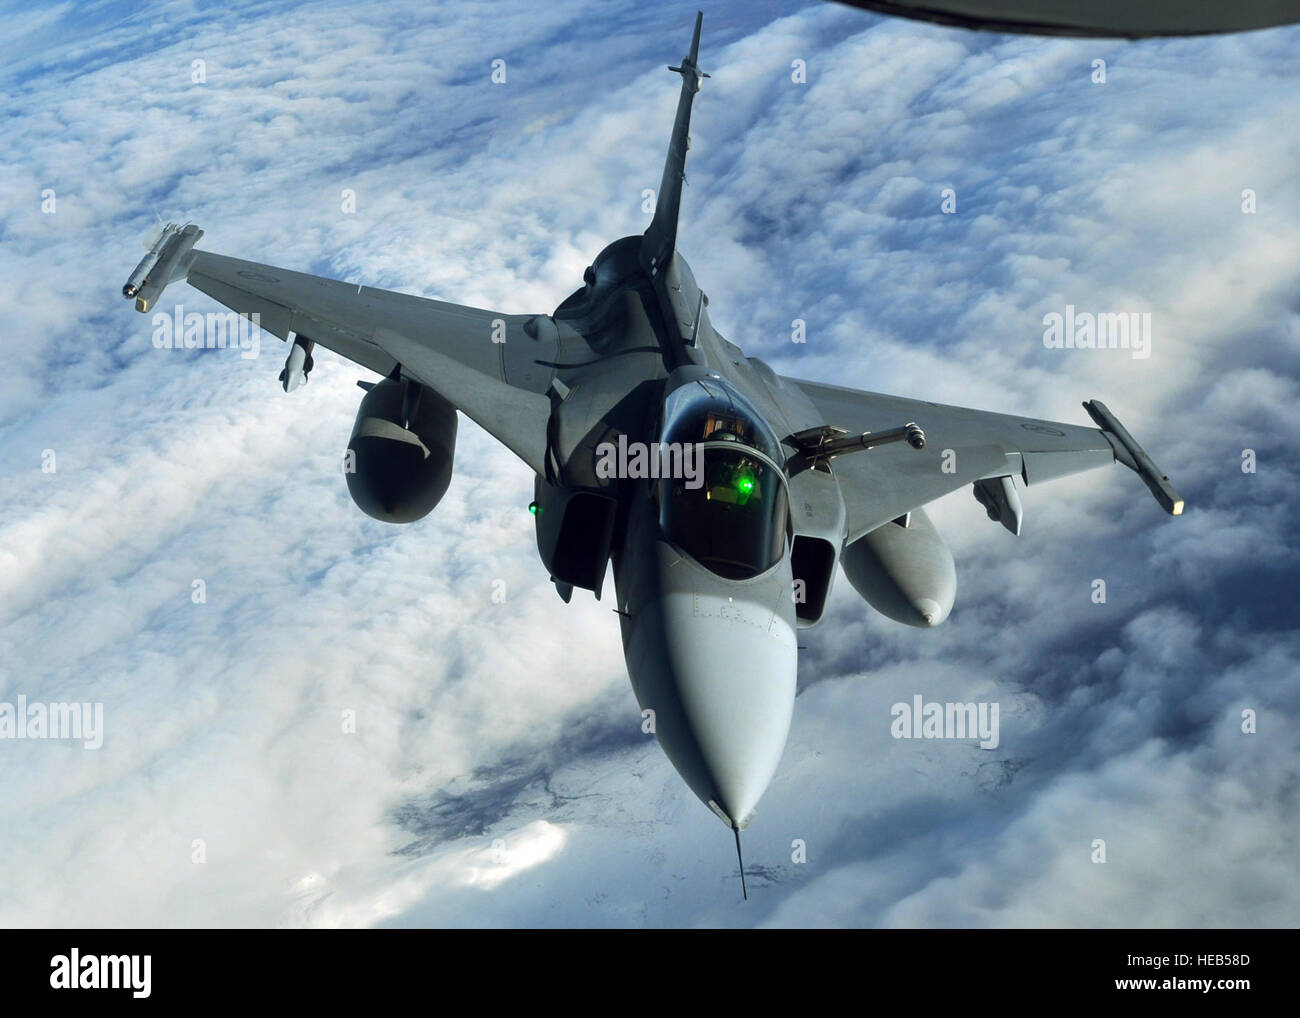 A Swedish JAS-39 Gripen returns to the play areas of the Arctic Challenge exercise Sept. 24, 2013, over Norway, Stock Photo